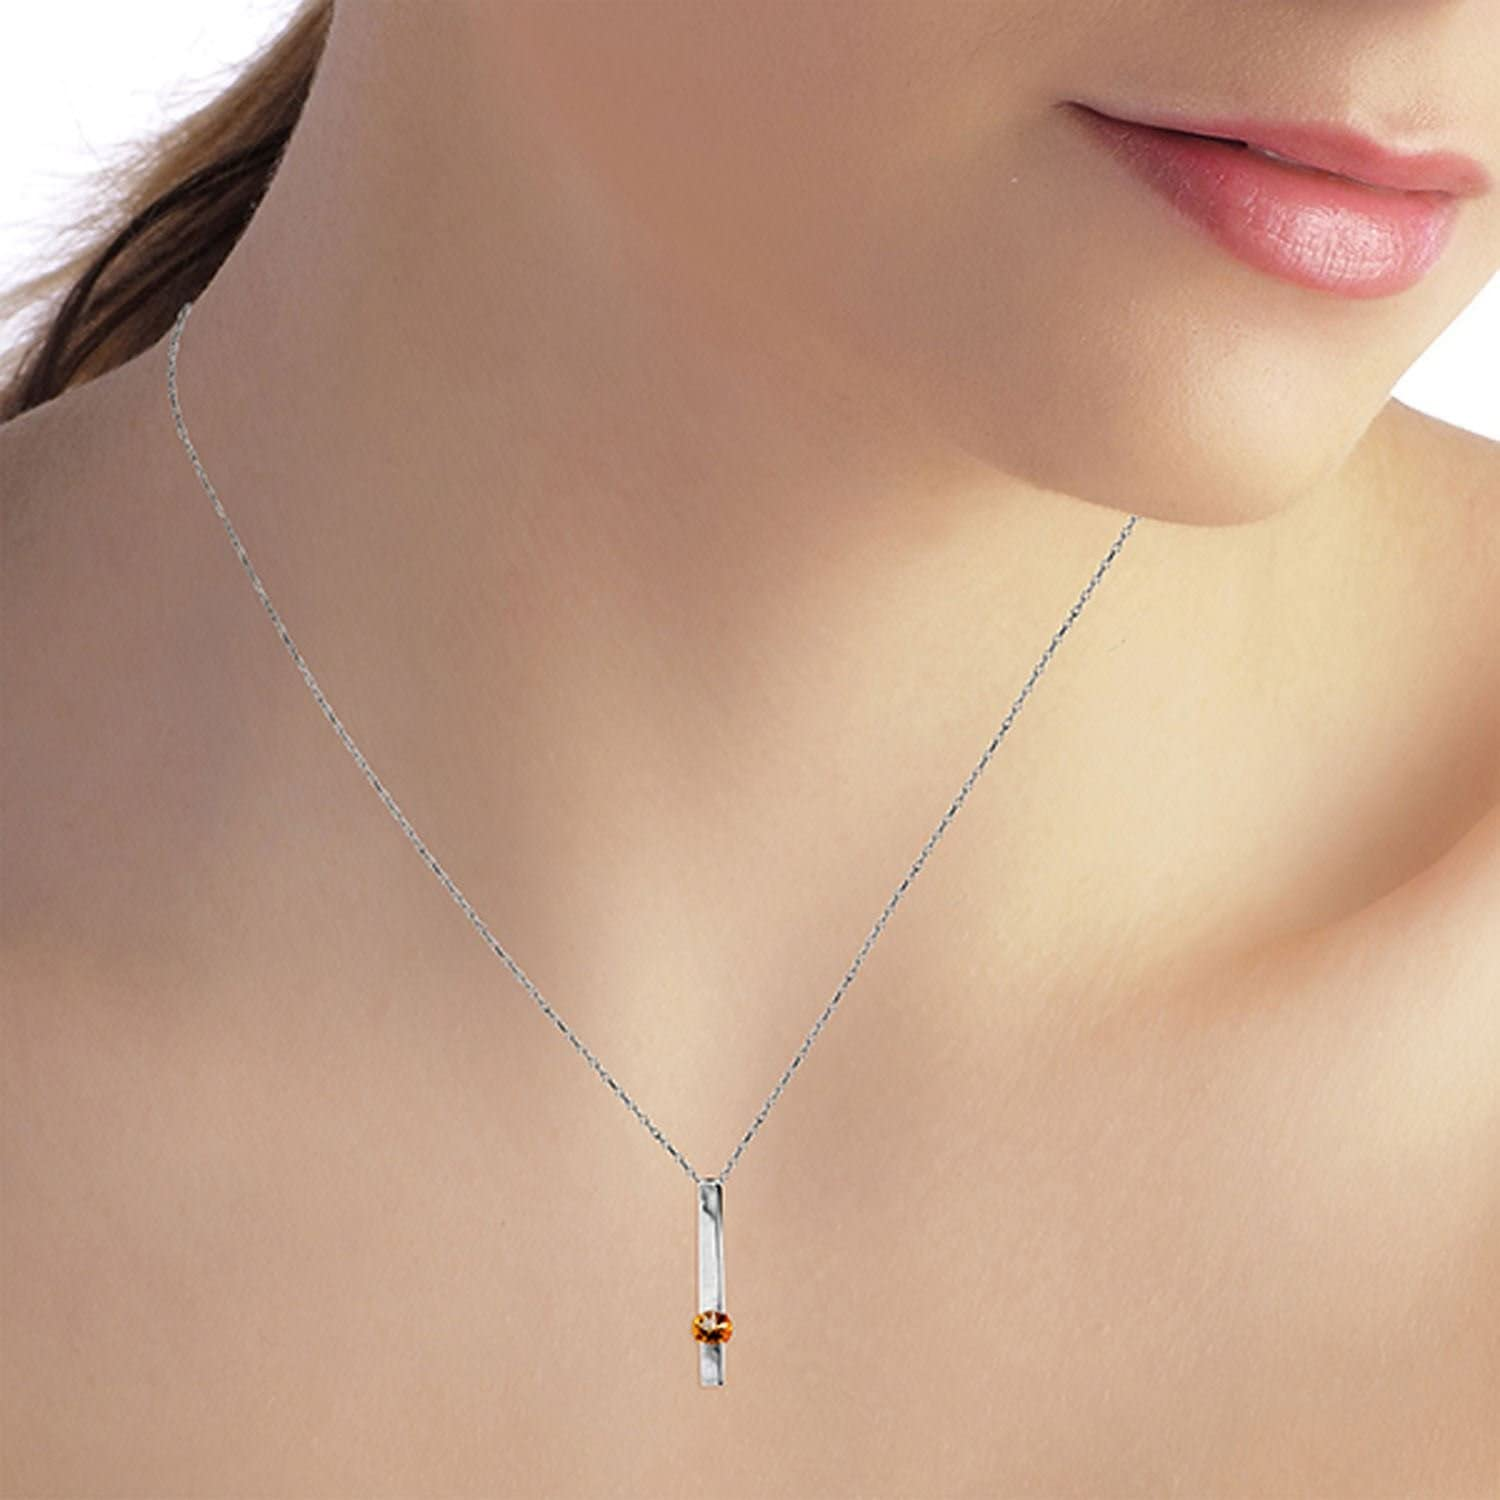 ALARRI 0.25 CTW 14K Solid White Gold Necklace Naturalcitrine with 24 Inch Chain Length